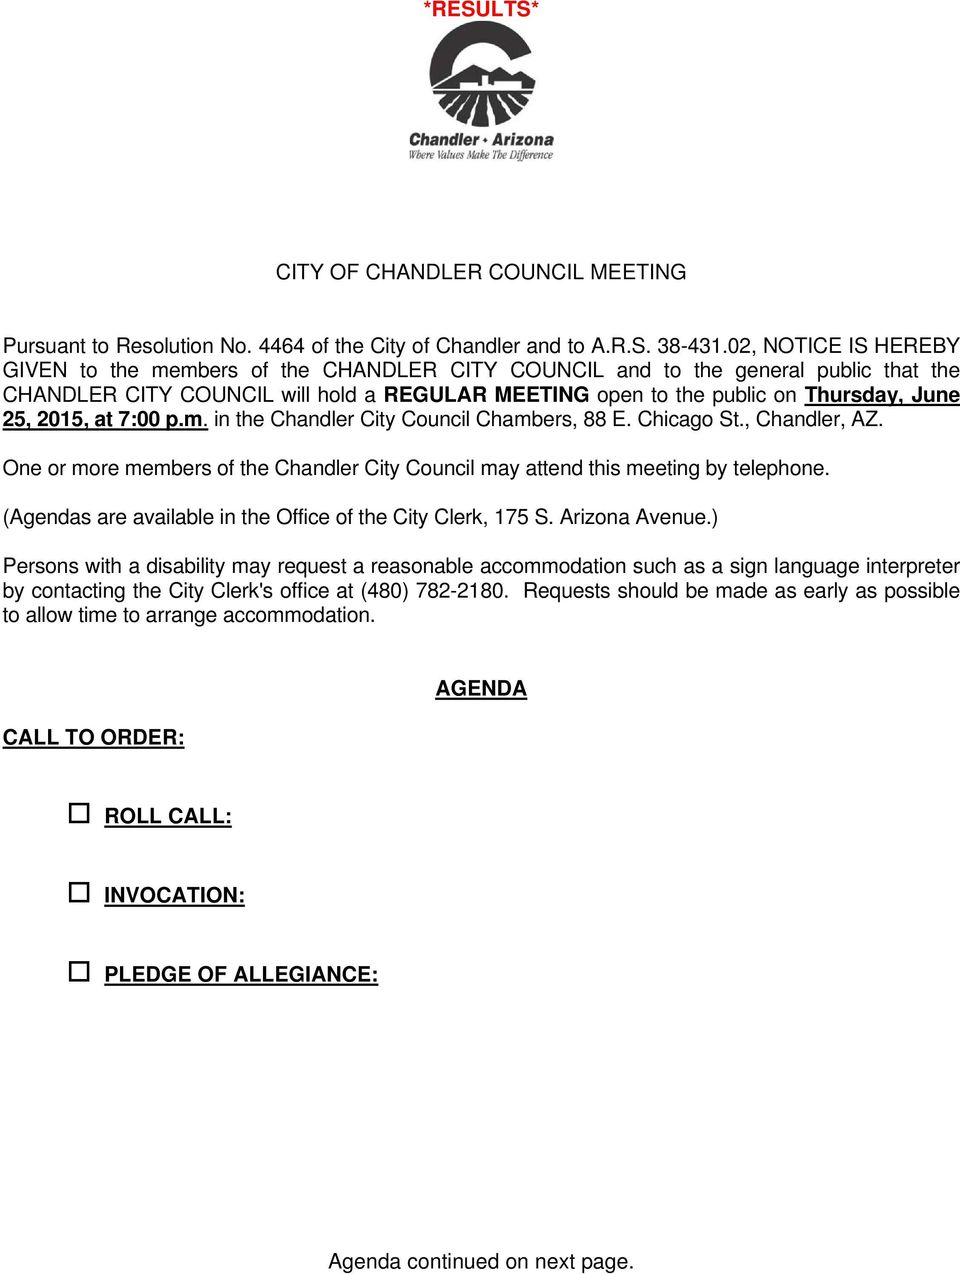 2015, at 7:00 p.m. in the Chandler City Council Chambers, 88 E. Chicago St., Chandler, AZ. One or more members of the Chandler City Council may attend this meeting by telephone.